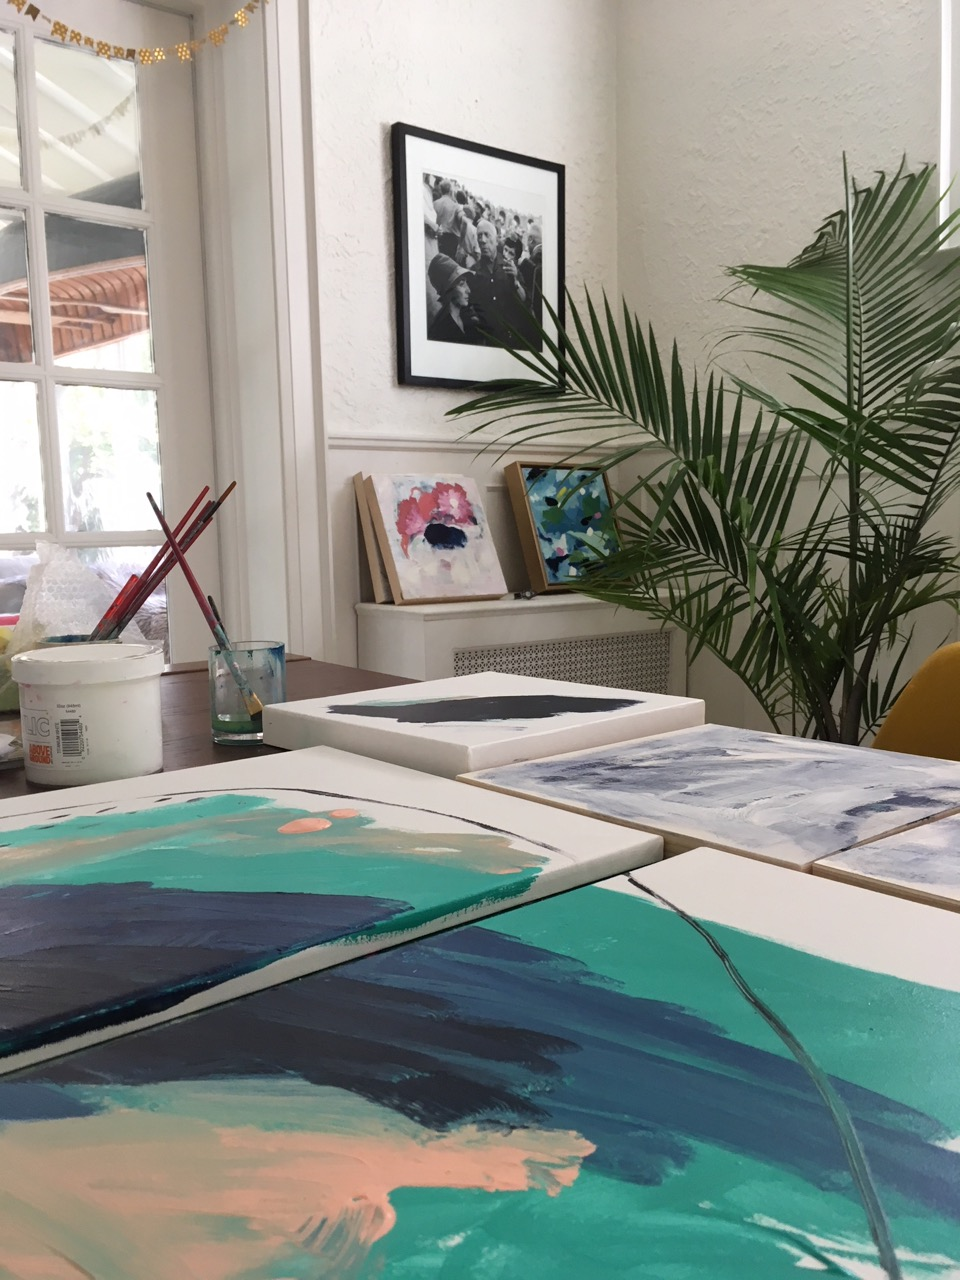 Studio views with work in progress (Companions)